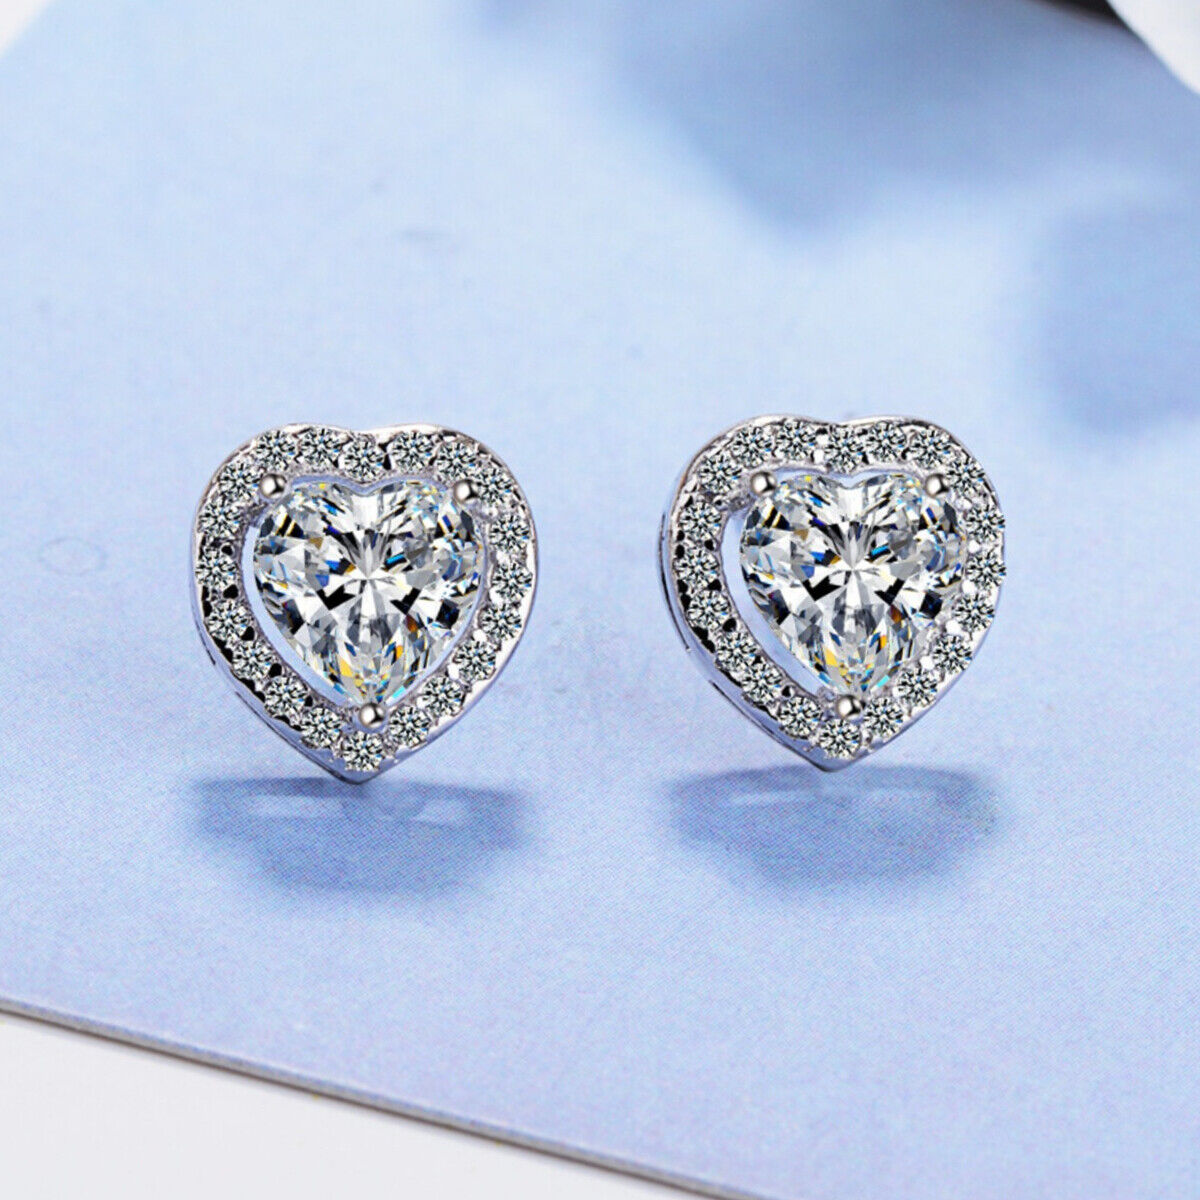 Jewellery - Heart Crystal Stone Stud Earrings 925 Sterling Silver Womens Girl Jewellery Gift